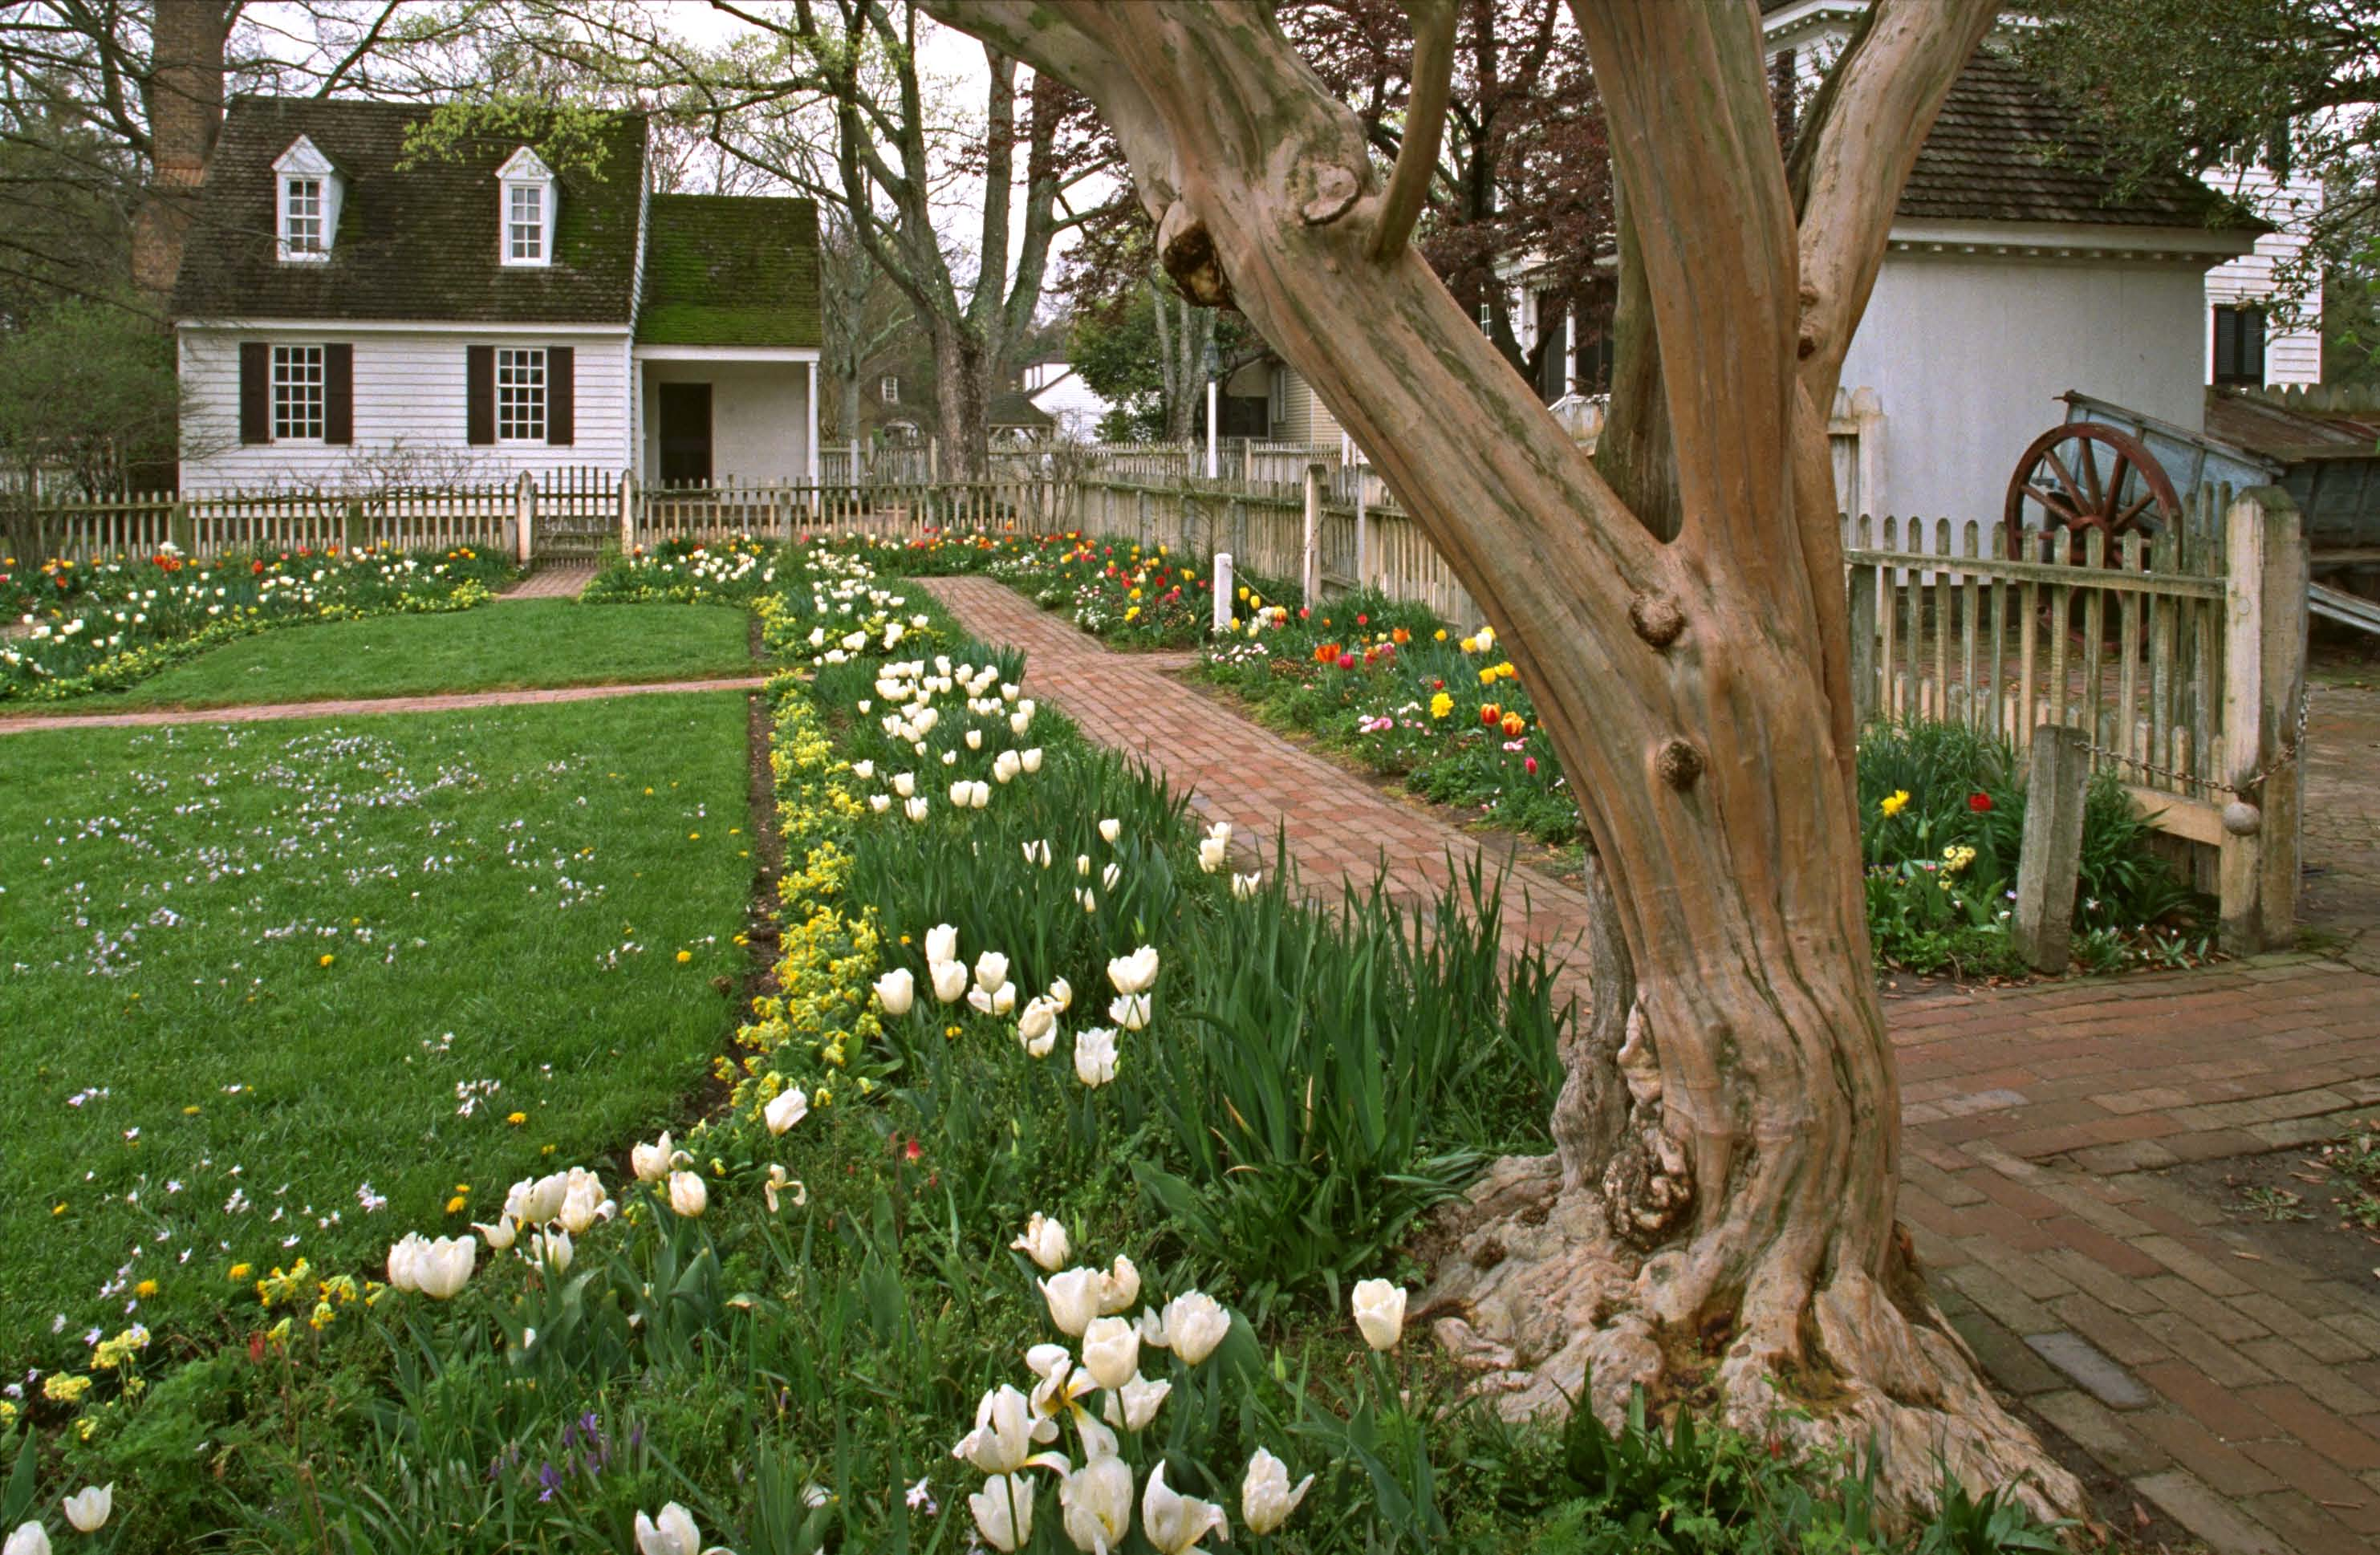 In the Taliaferro-Cole garden, straight brick paths link buildings. (Photo: Courtesy CWF)